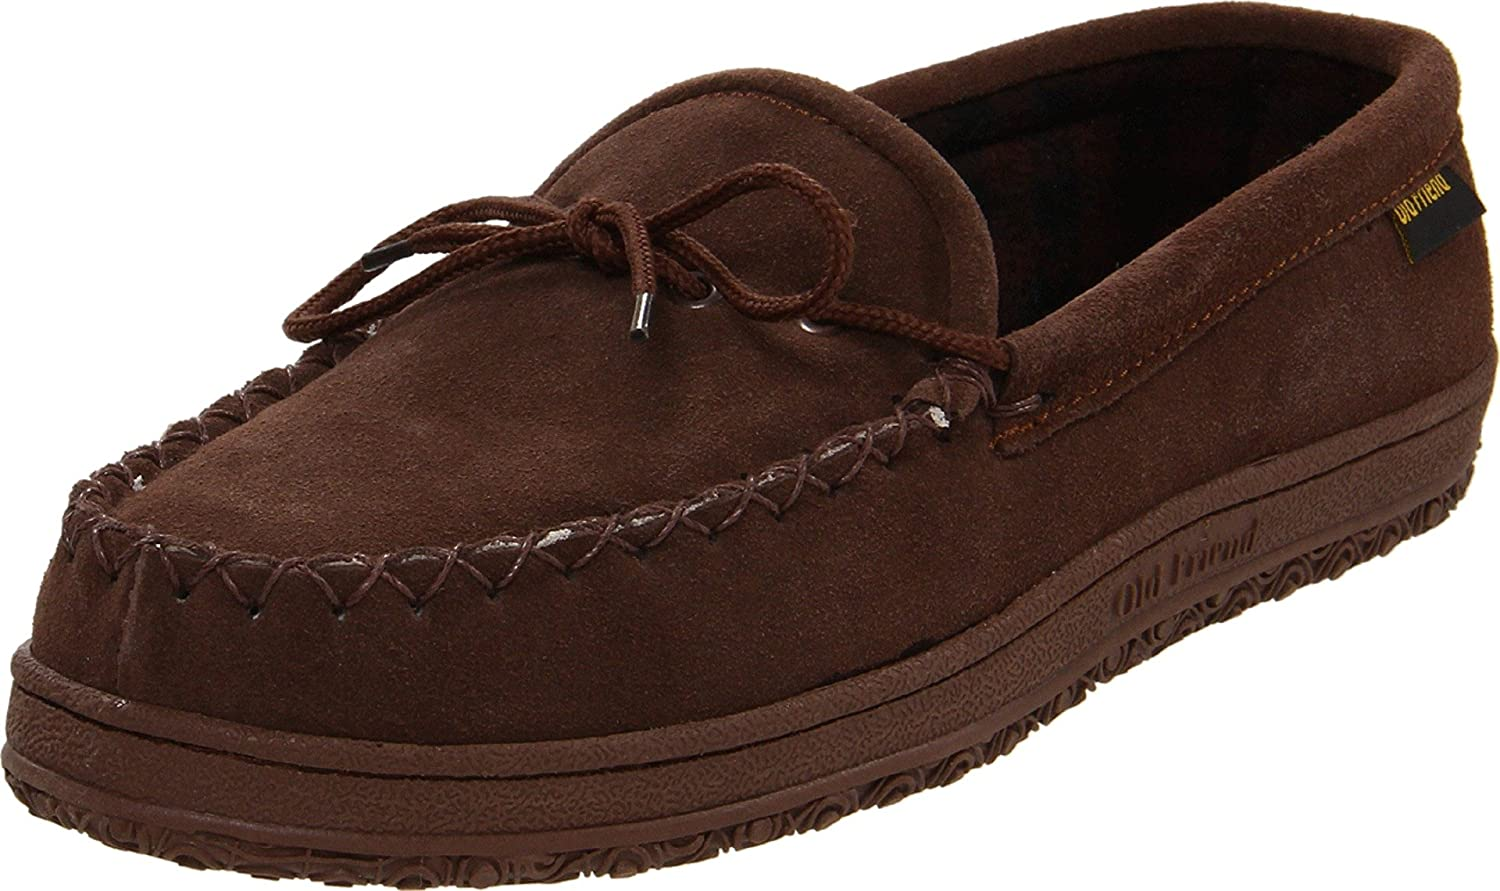 Old Friend Men's Wisconsin Slipper